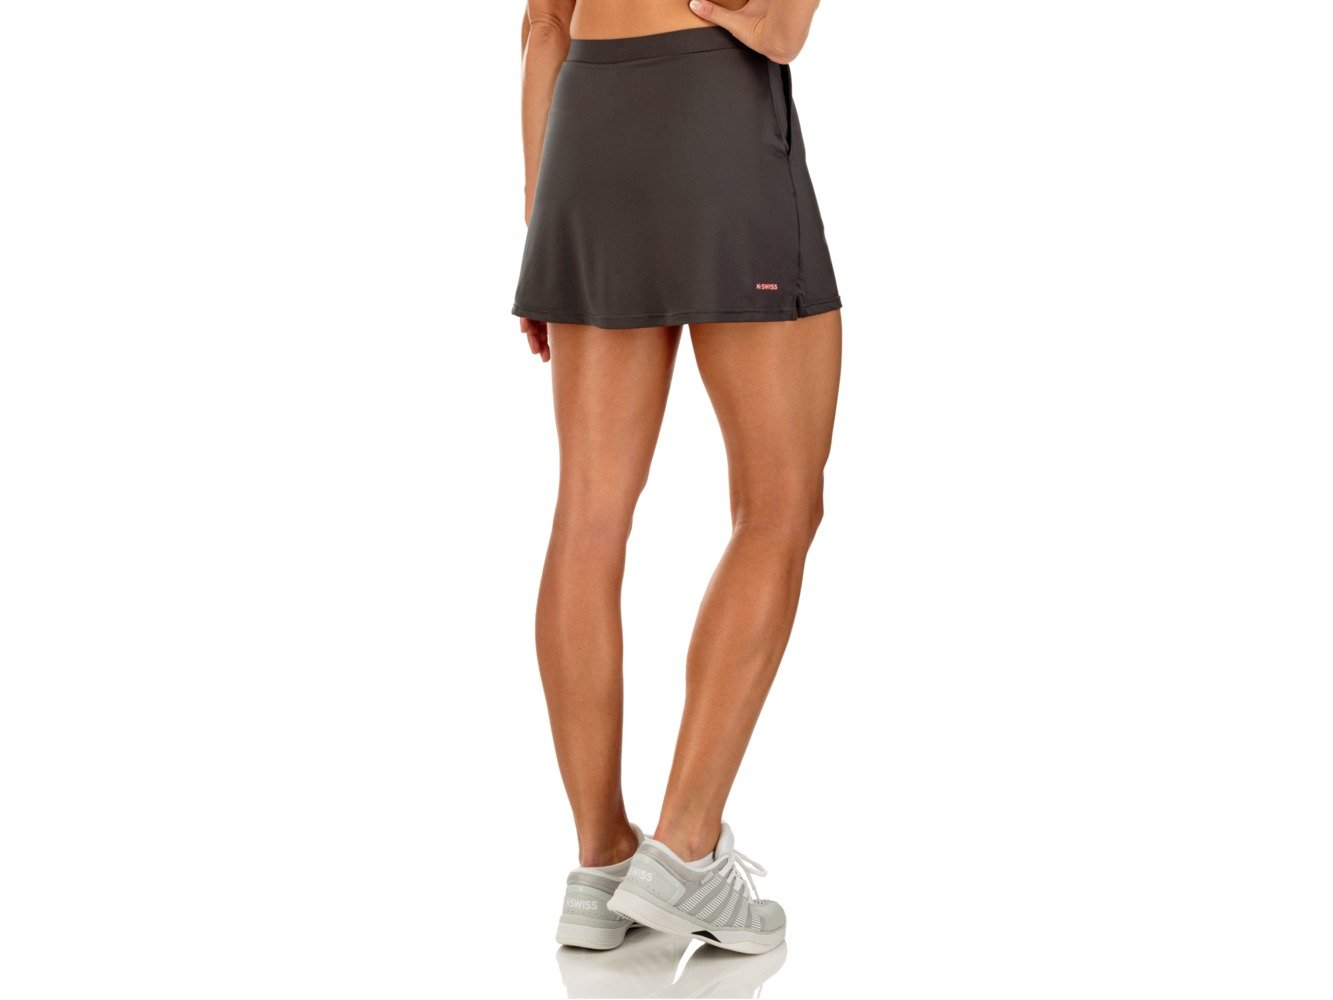 K-Swiss Women's Club Tennis Skirt, Dark Shadow, Medium